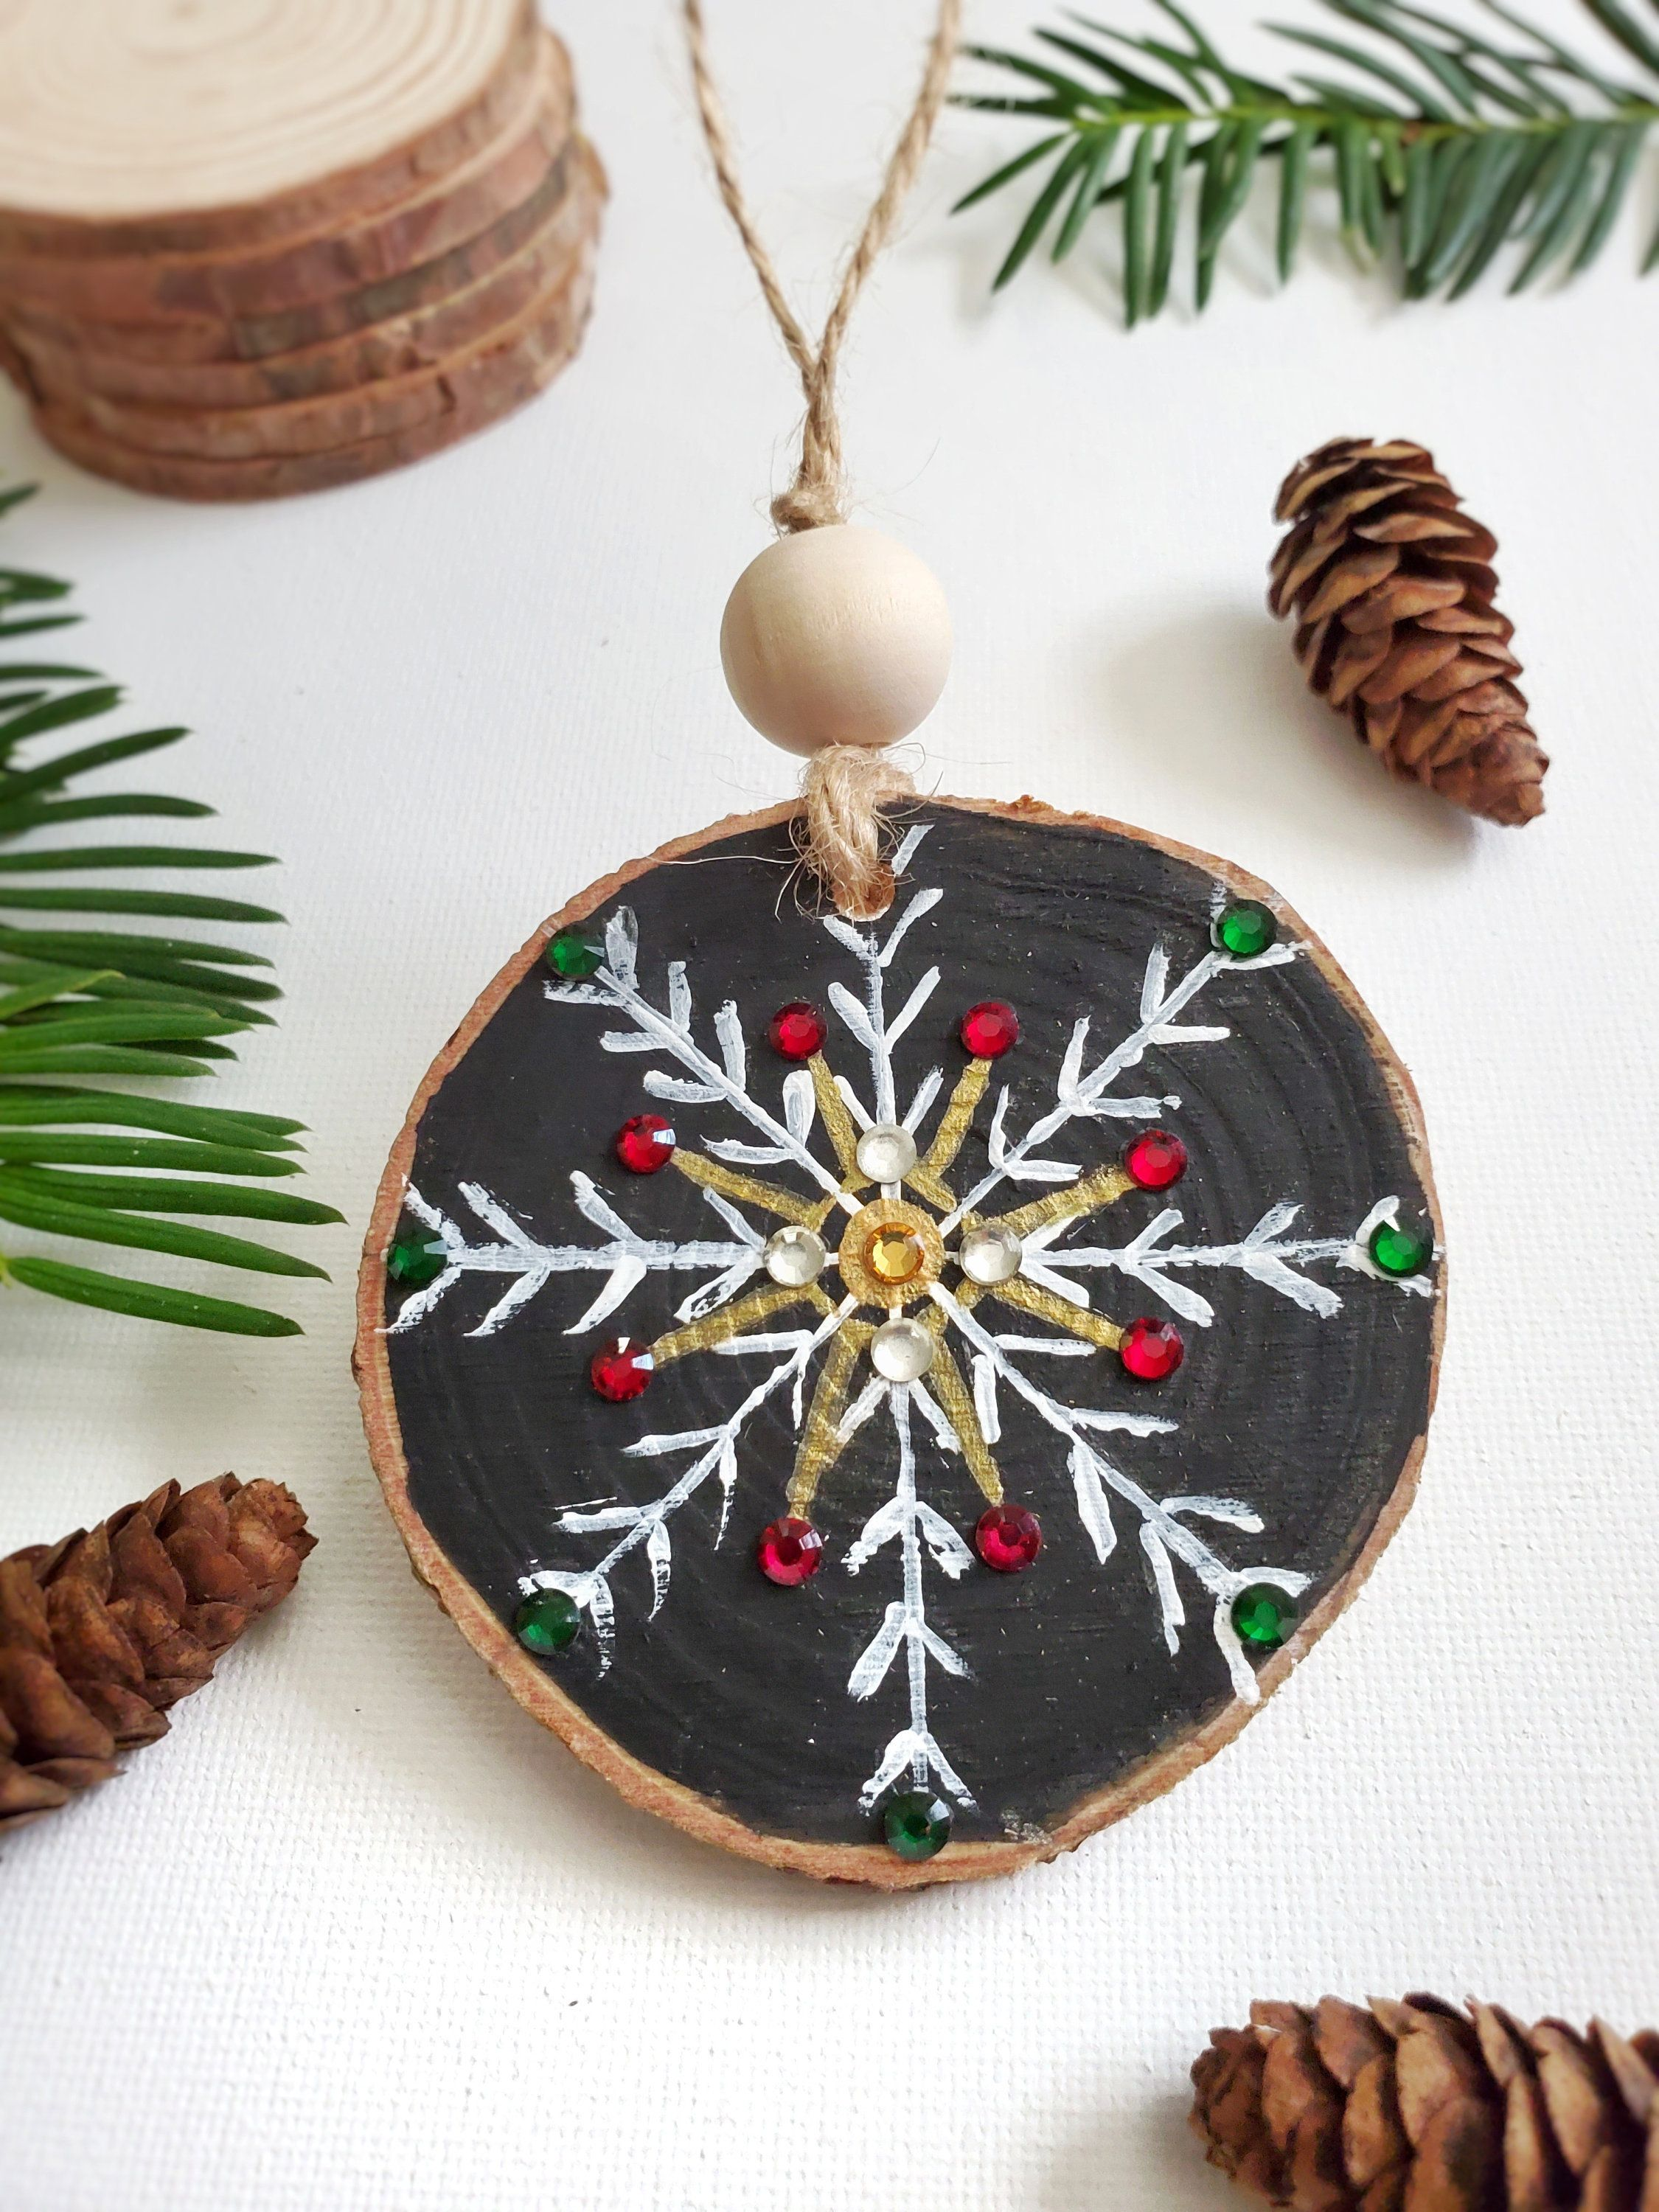 Snowflake Ornamentchristmas Ornament Wood Slice Ornament Etsy In 2020 Christmas Crafts For Gifts Christmas Ornament Crafts Handmade Christmas Ornaments